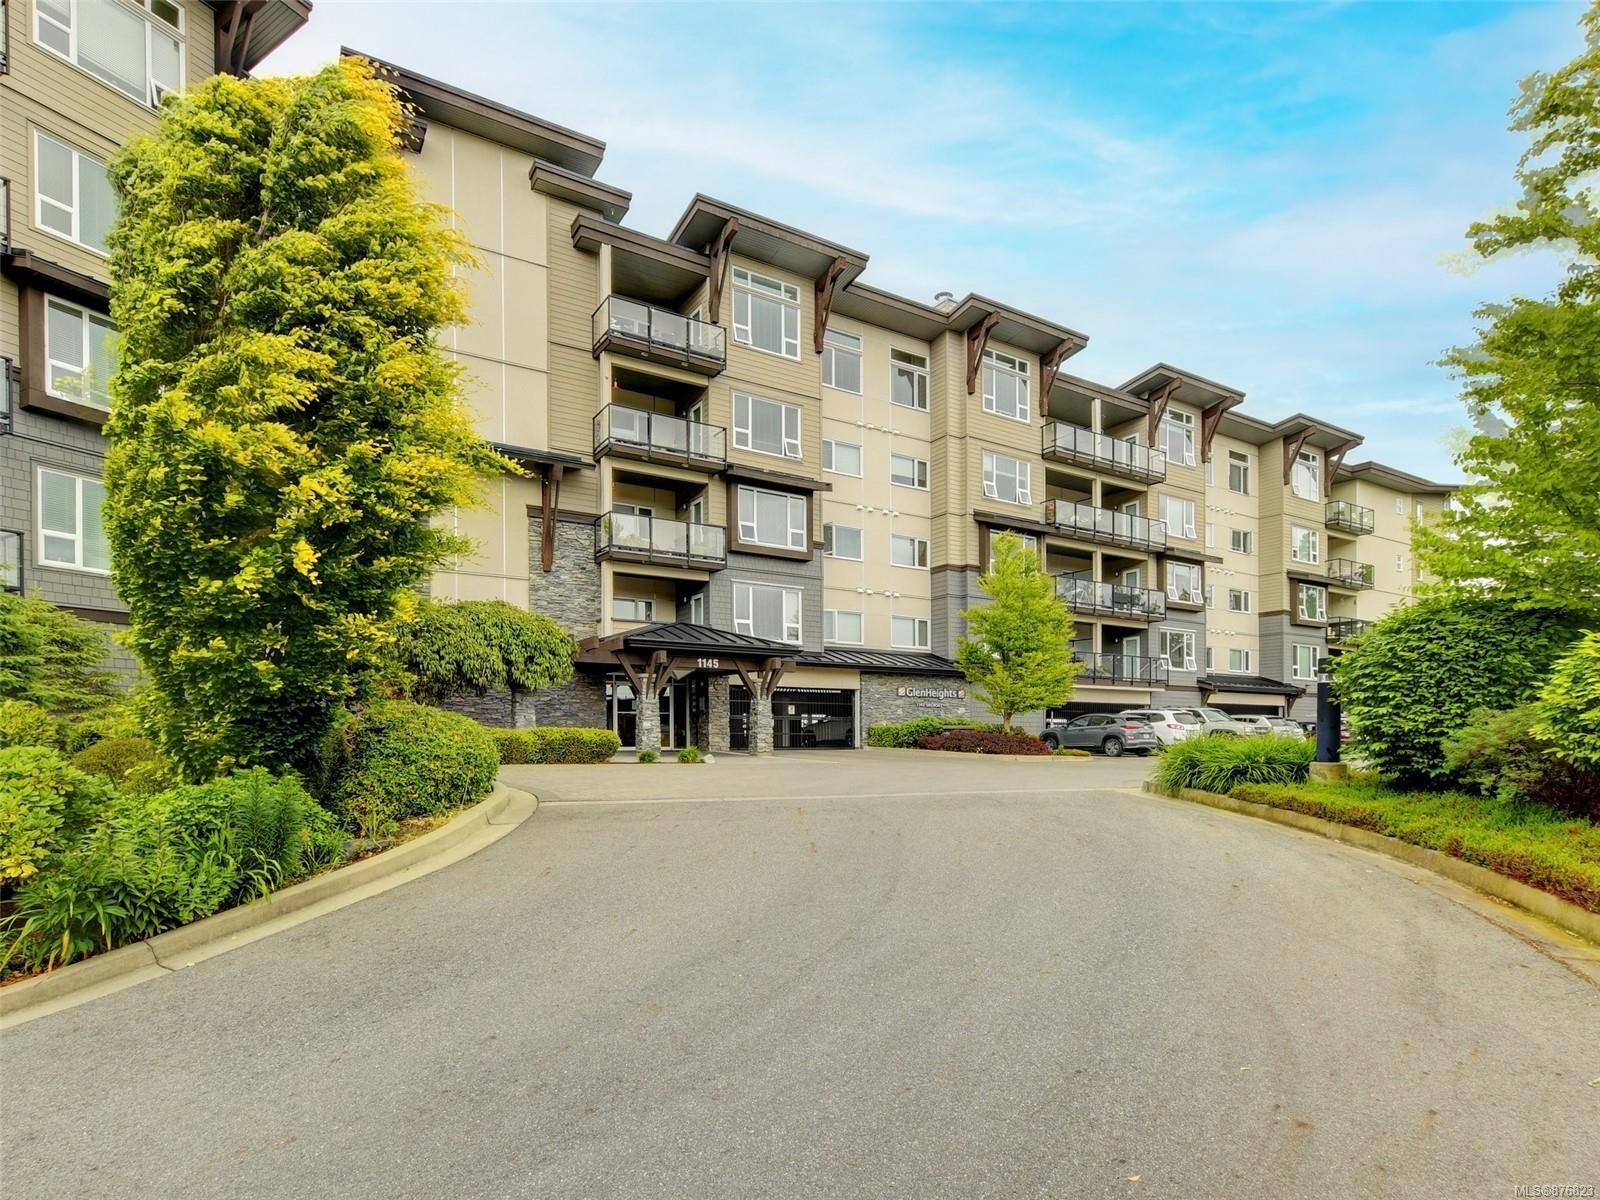 Main Photo: 402 1145 Sikorsky Rd in : La Westhills Condo for sale (Langford)  : MLS®# 876823